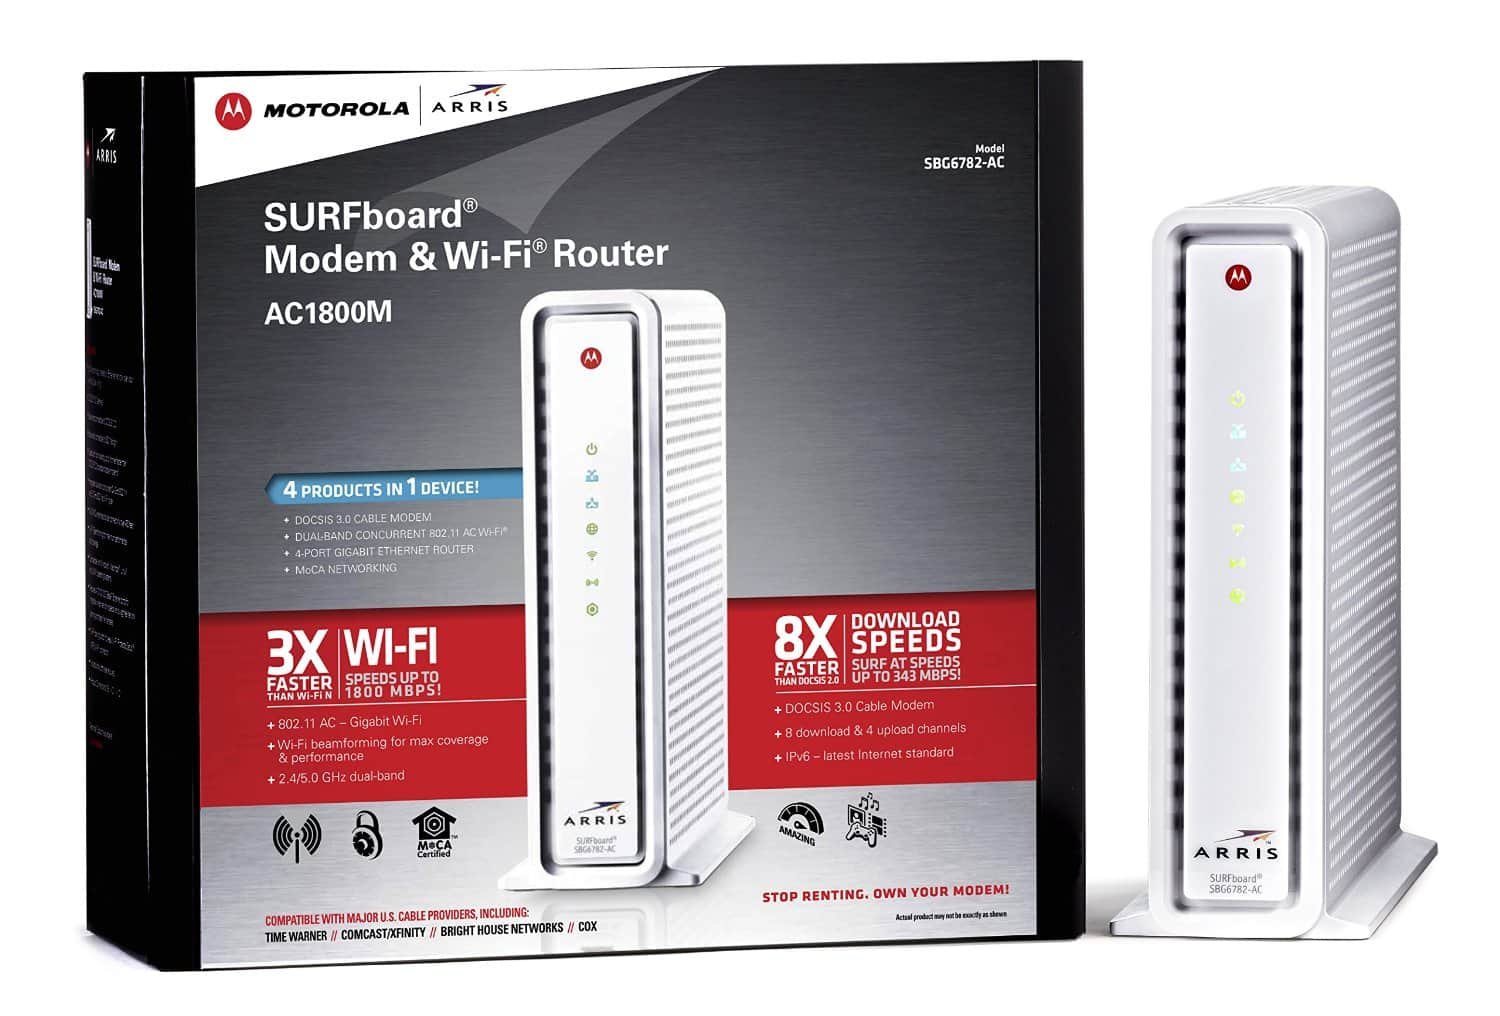 Prime Members: ARRIS SURFboard SBG6782AC DOCSIS 3.0 Cable Modem/ Wi-Fi AC1750 Router - Retail Packaging - White for $99.99 + FS (Prime) (Amazon)